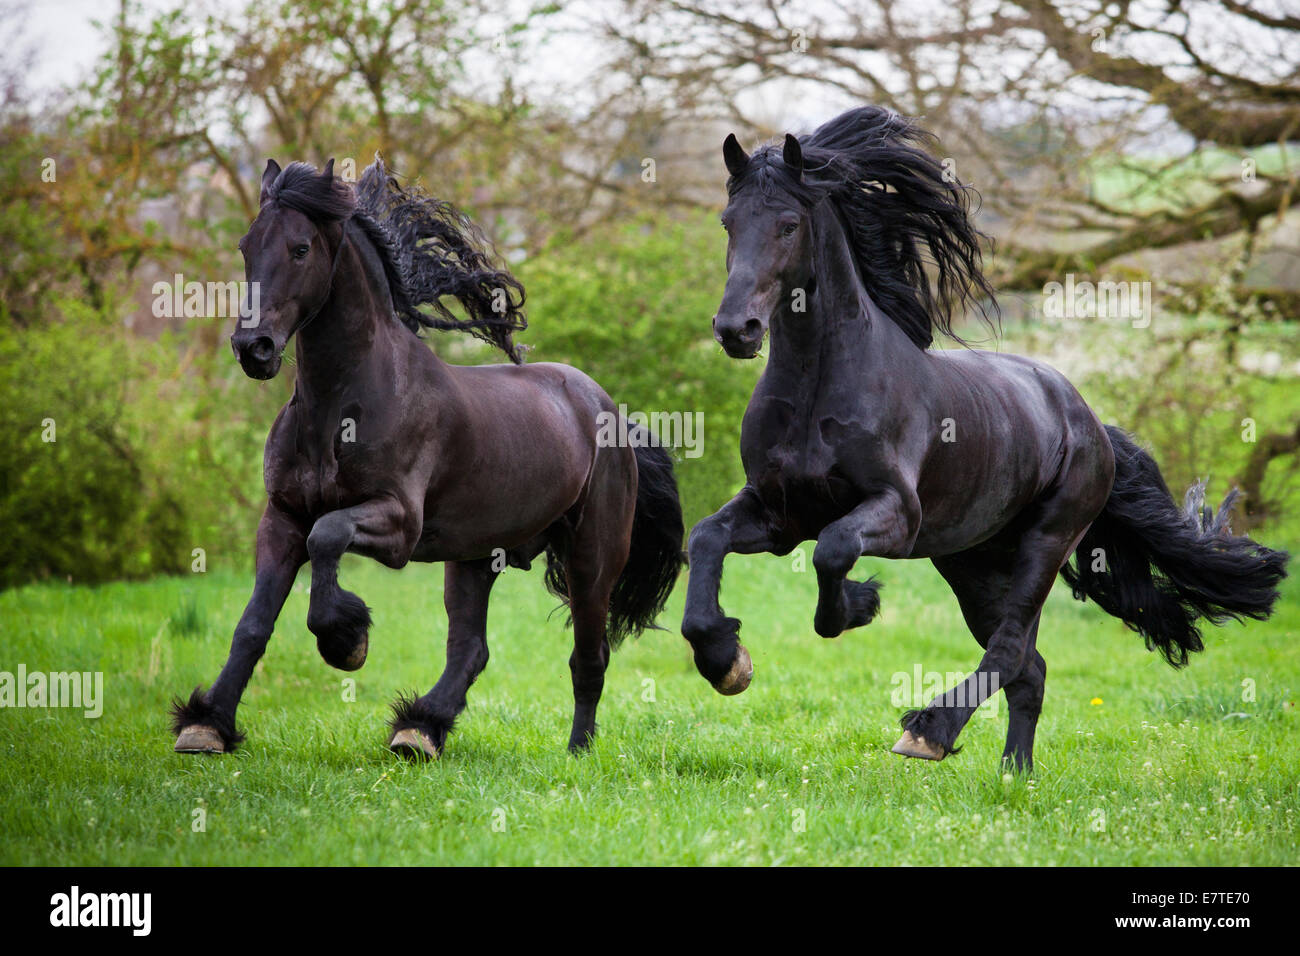 Equine photography by Manuela Stefan | Equine portraits of ...  |Friesian Horses Running